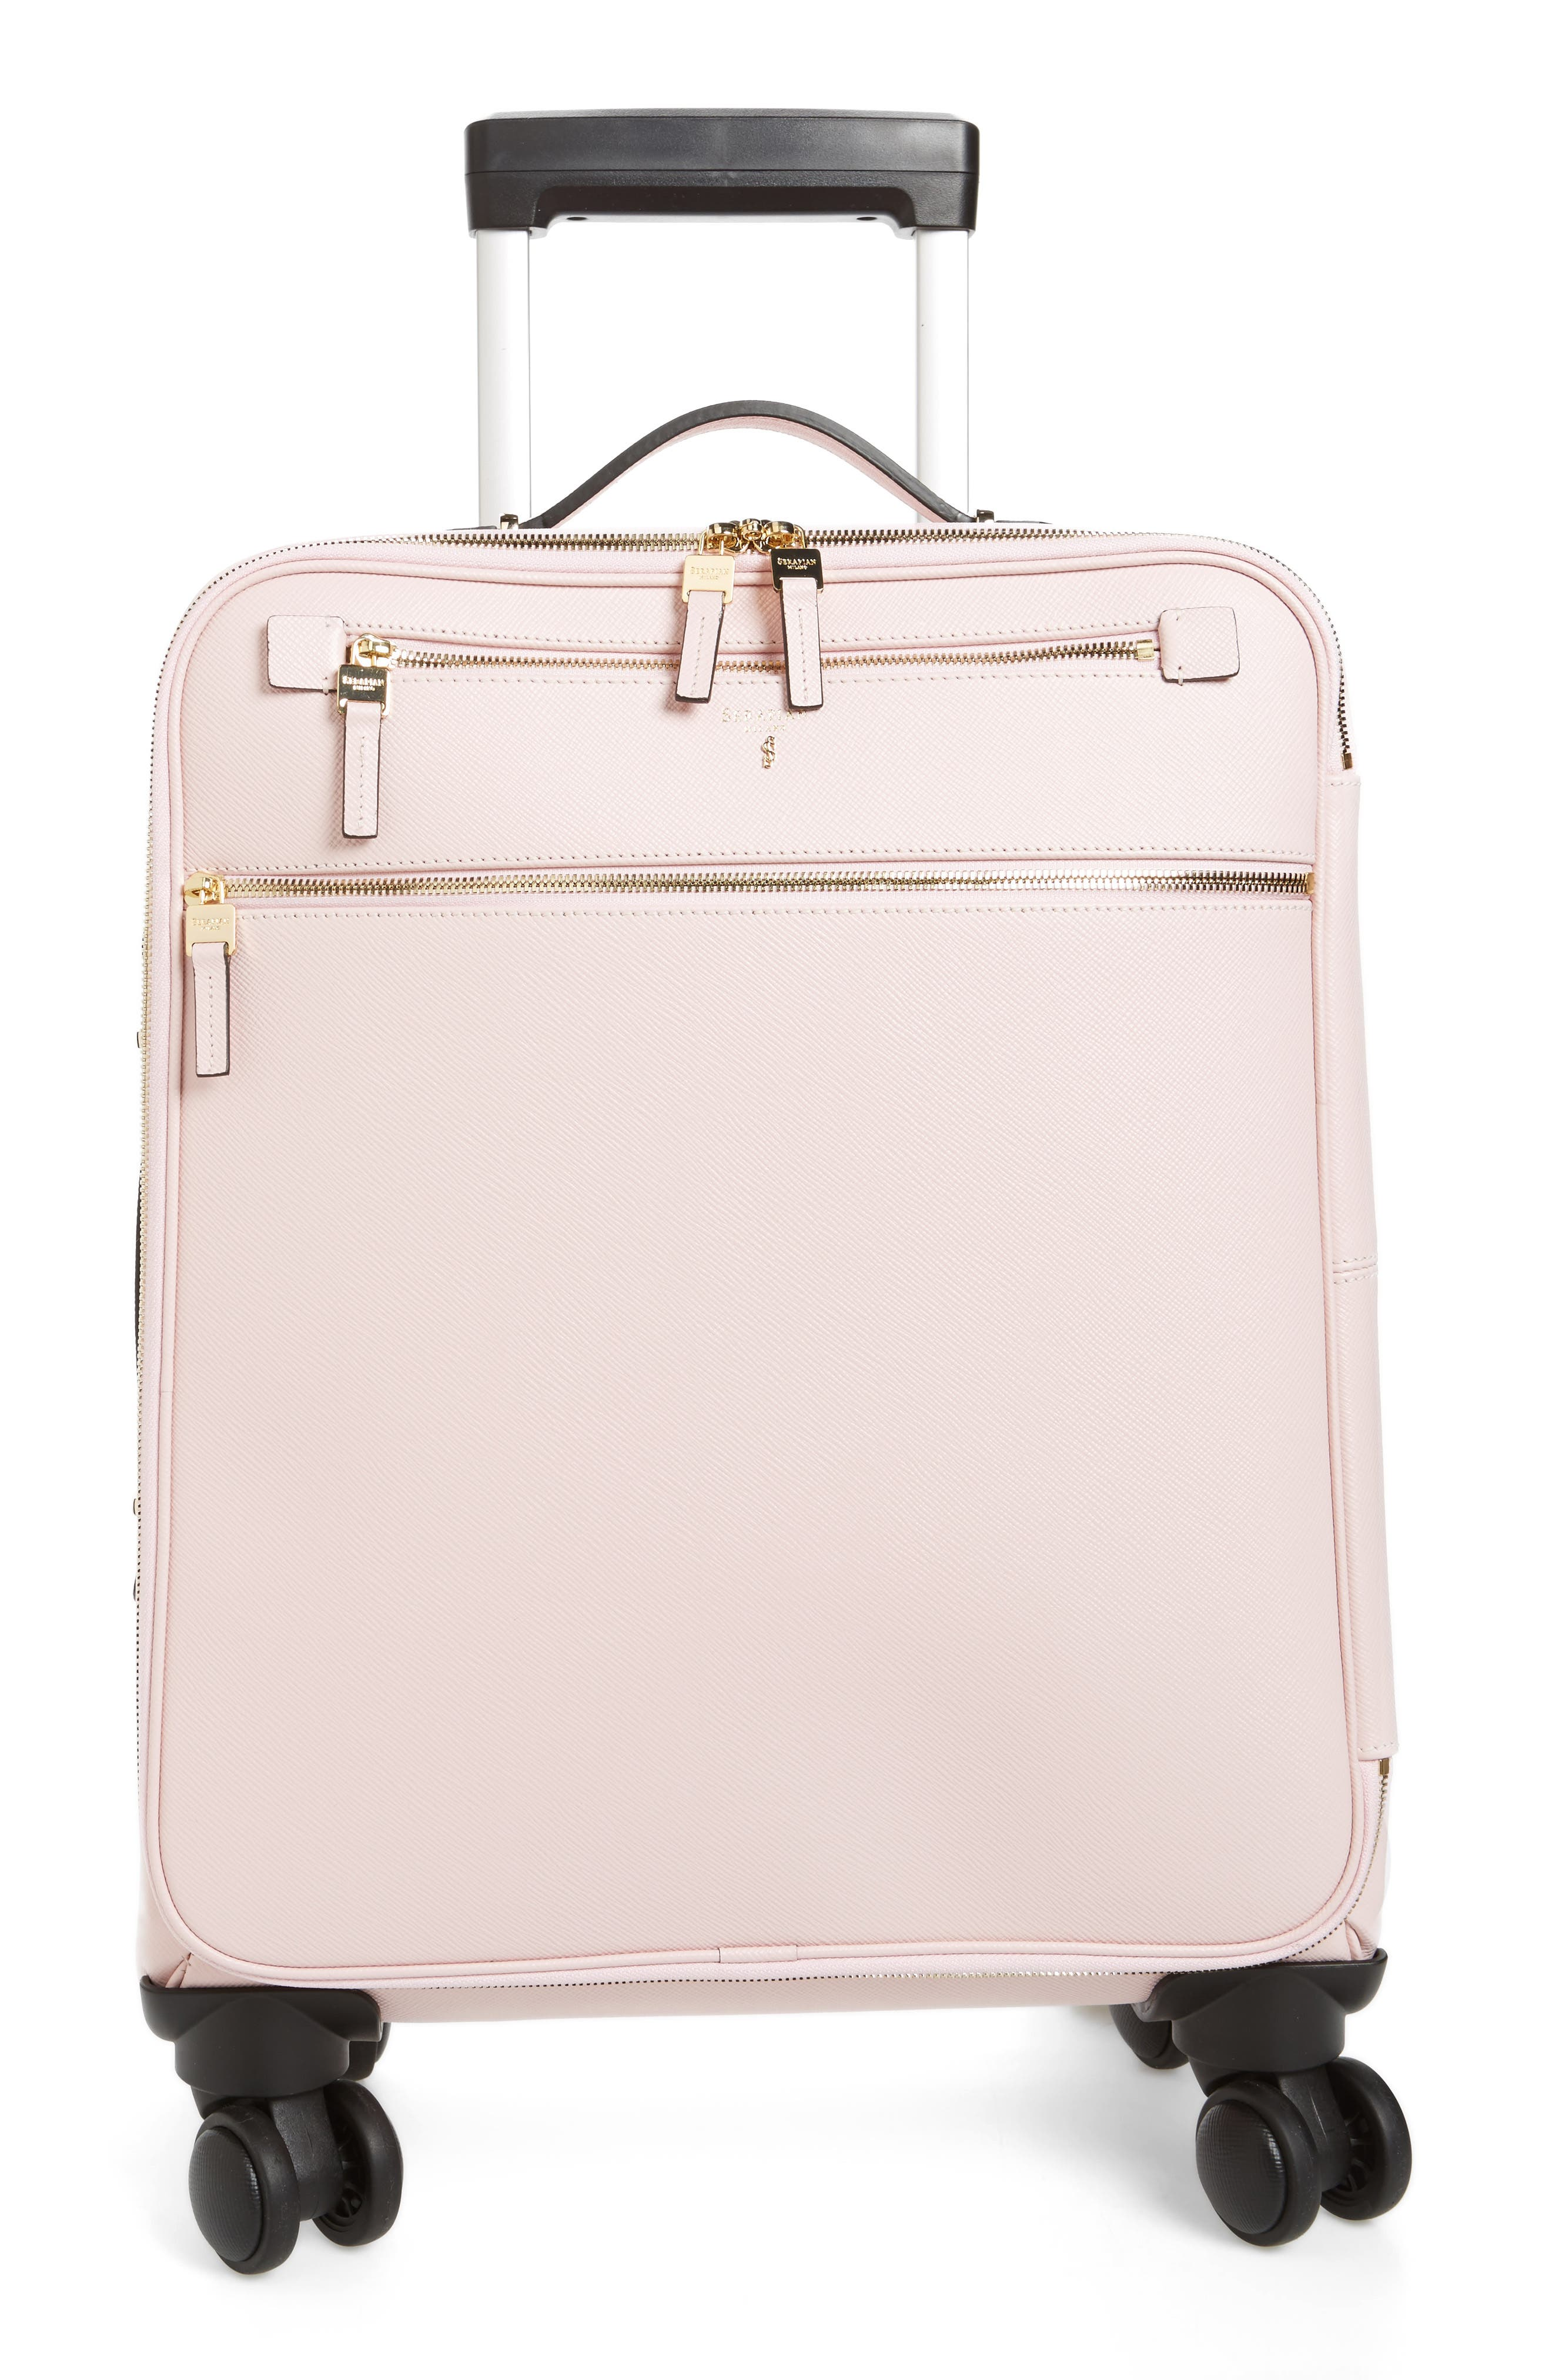 Trolley Spinner Wheeled Carry-On Suitcase,                             Main thumbnail 5, color,